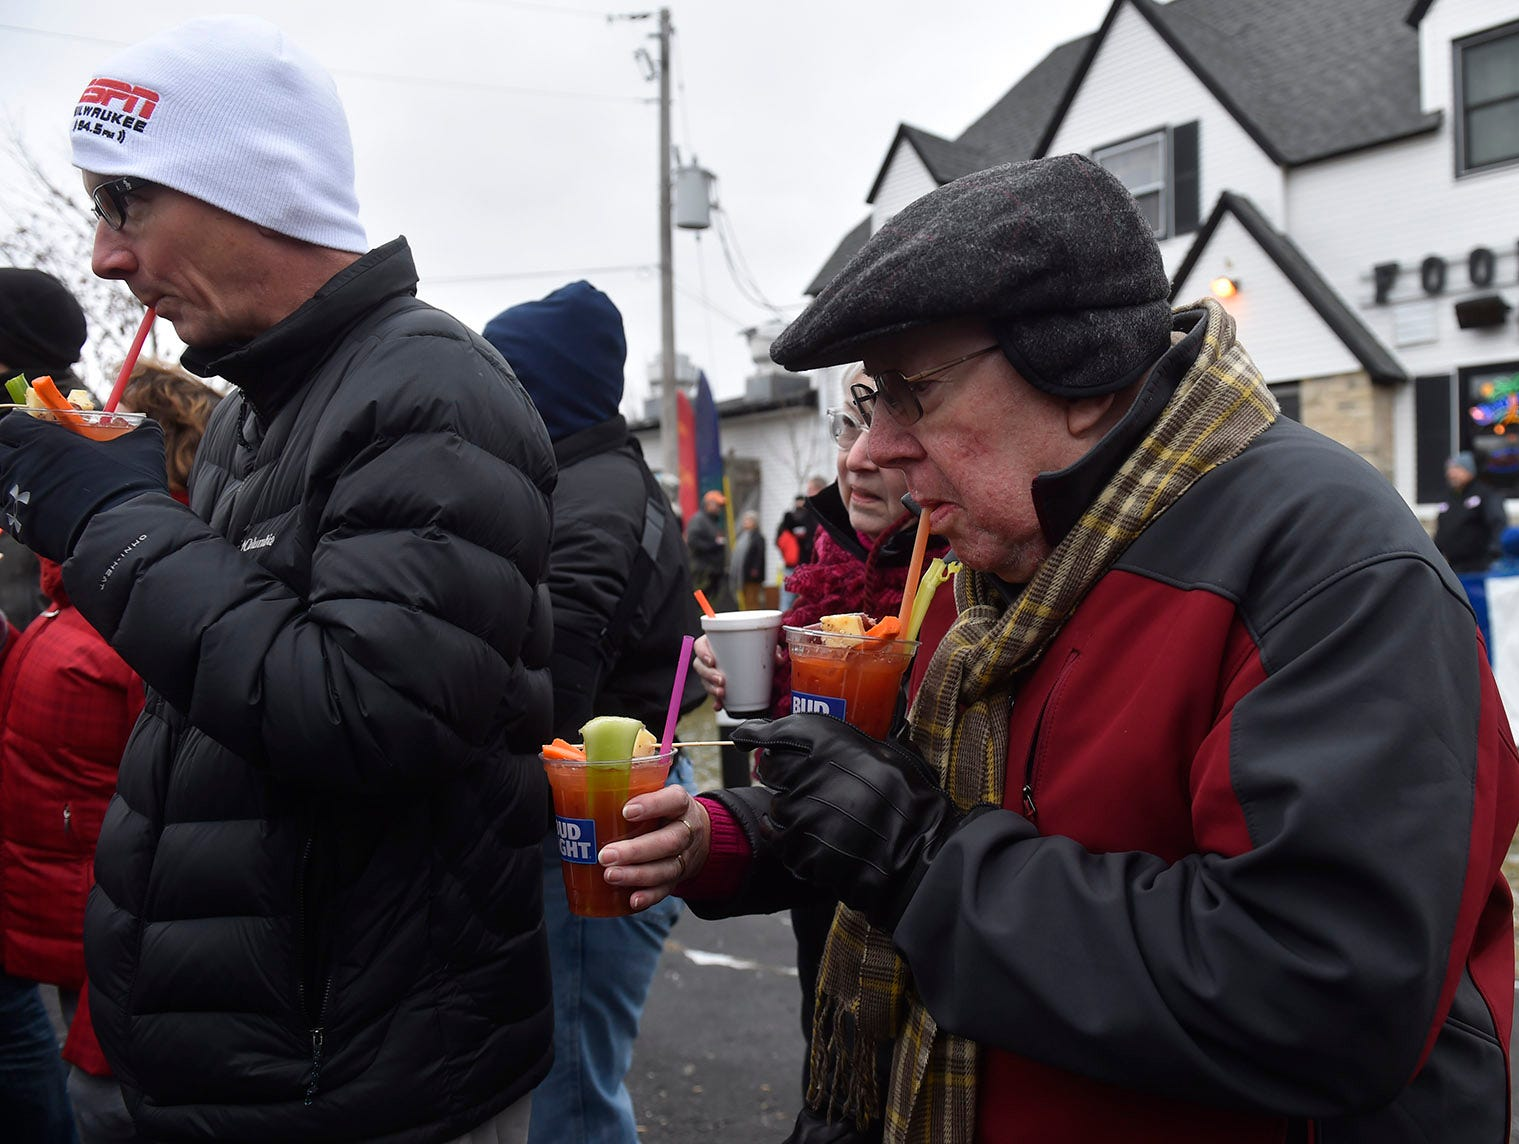 Dan Carlson of Fox Point, left, and his father-in-law Dick Farrell of Baileys Harbor trying out the local parade beverages at the Thanksgiving Day Parade in Jacksonport on Thursday, Nov. 22, 2018. Tina M. Gohr/USA TODAY NETWORK-Wisconsin